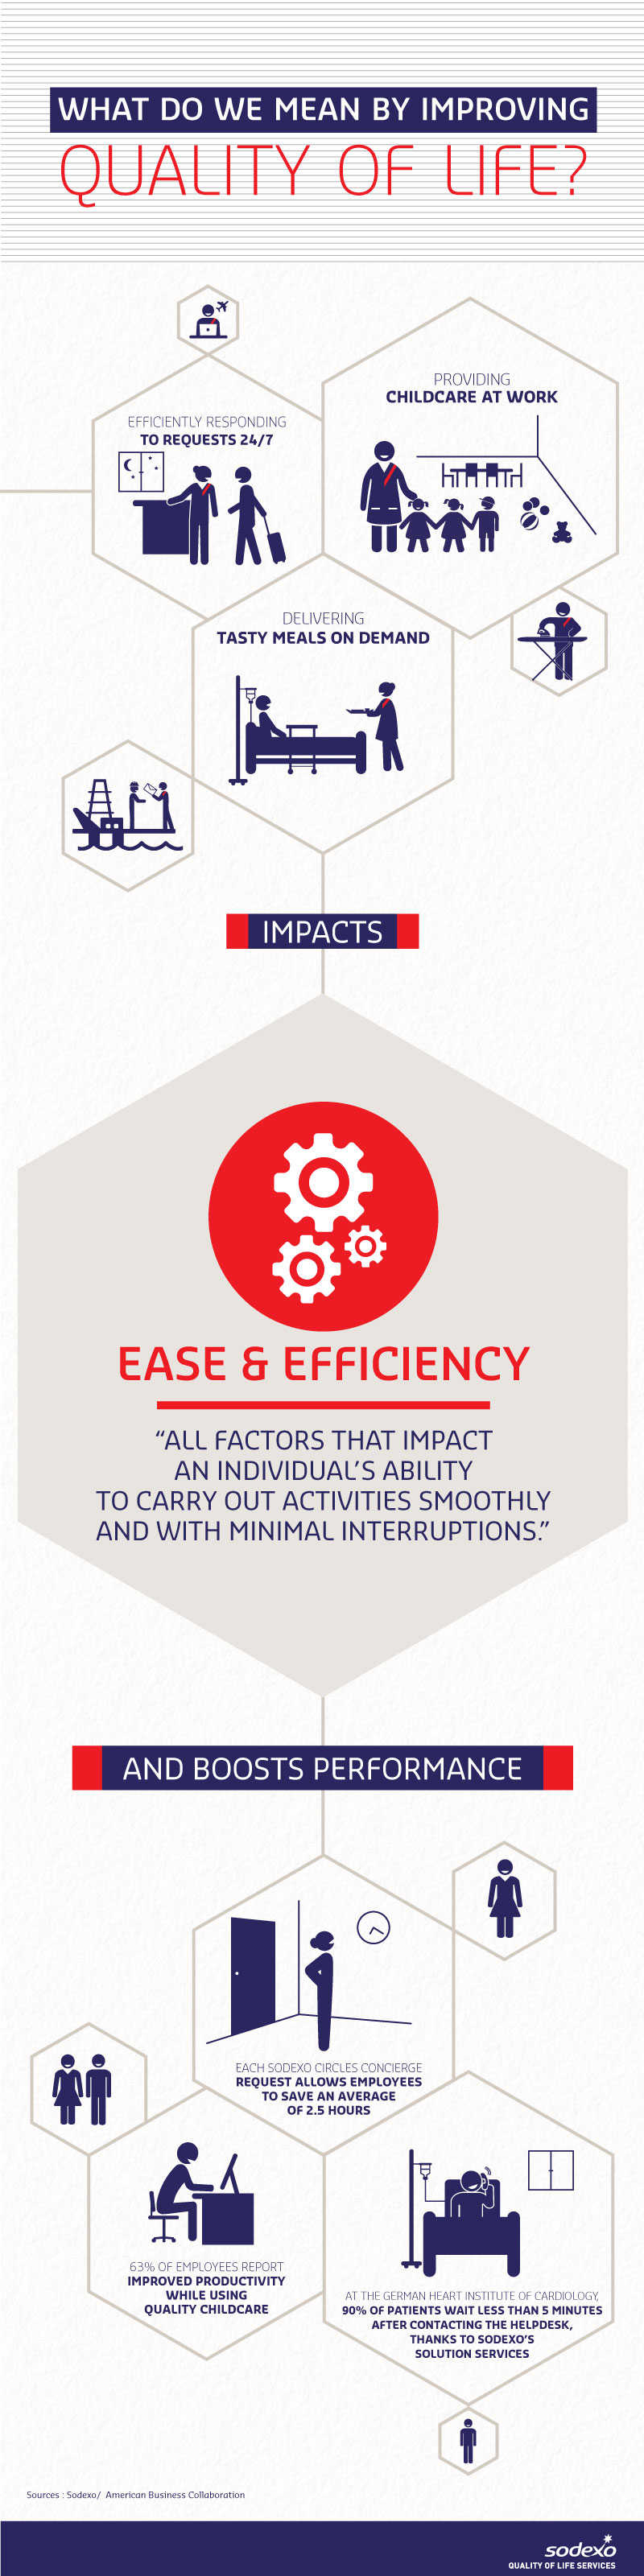 Quality of Life Dimension - Ease and efficiency (infographic)